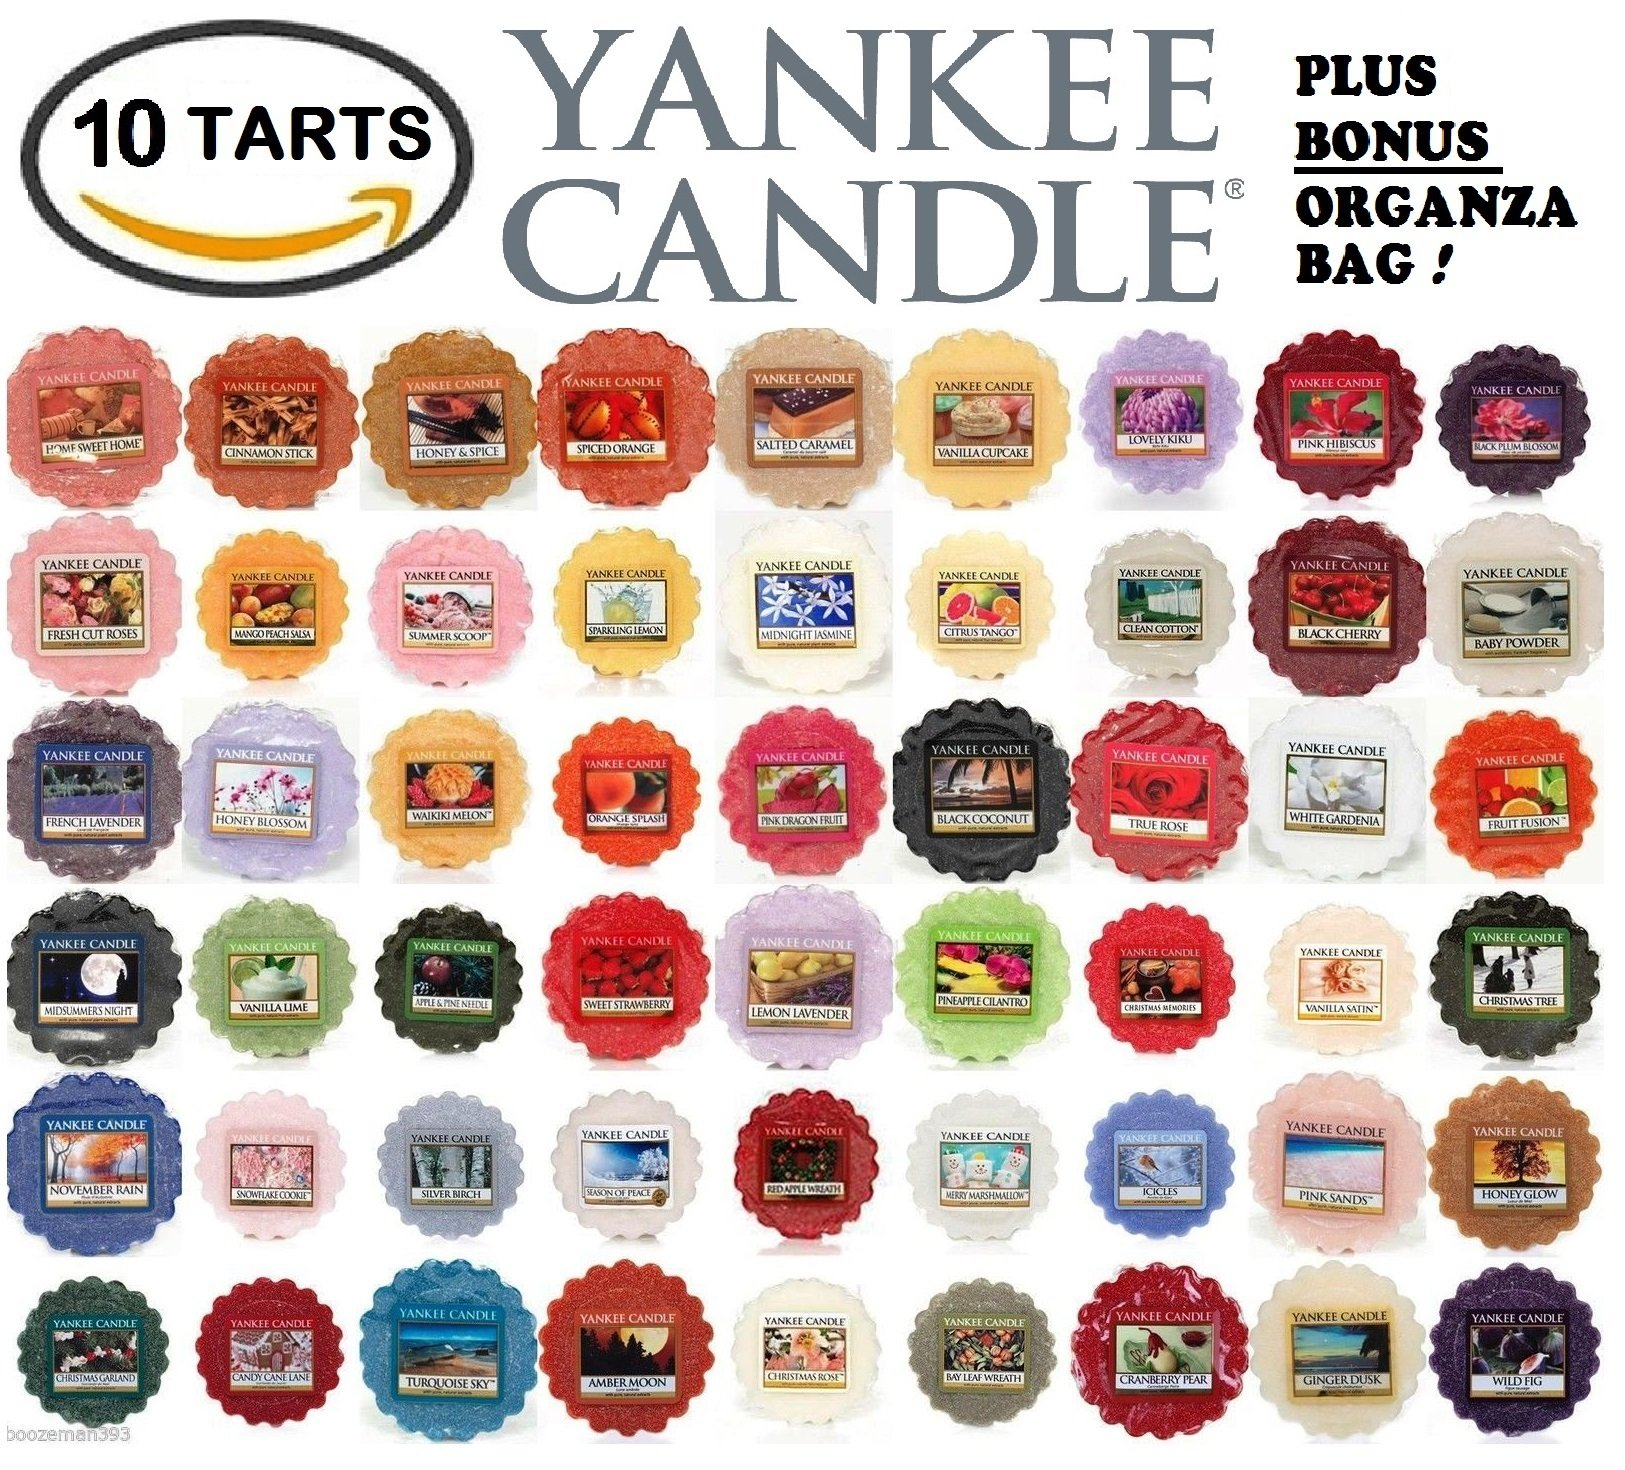 Yankee Candle Wax Tarts - Grab Bag of 10 Assorted Yankee Candle Wax Melts - Random Mixed Scents with BONUS yellow organza bag by Yankee Candle